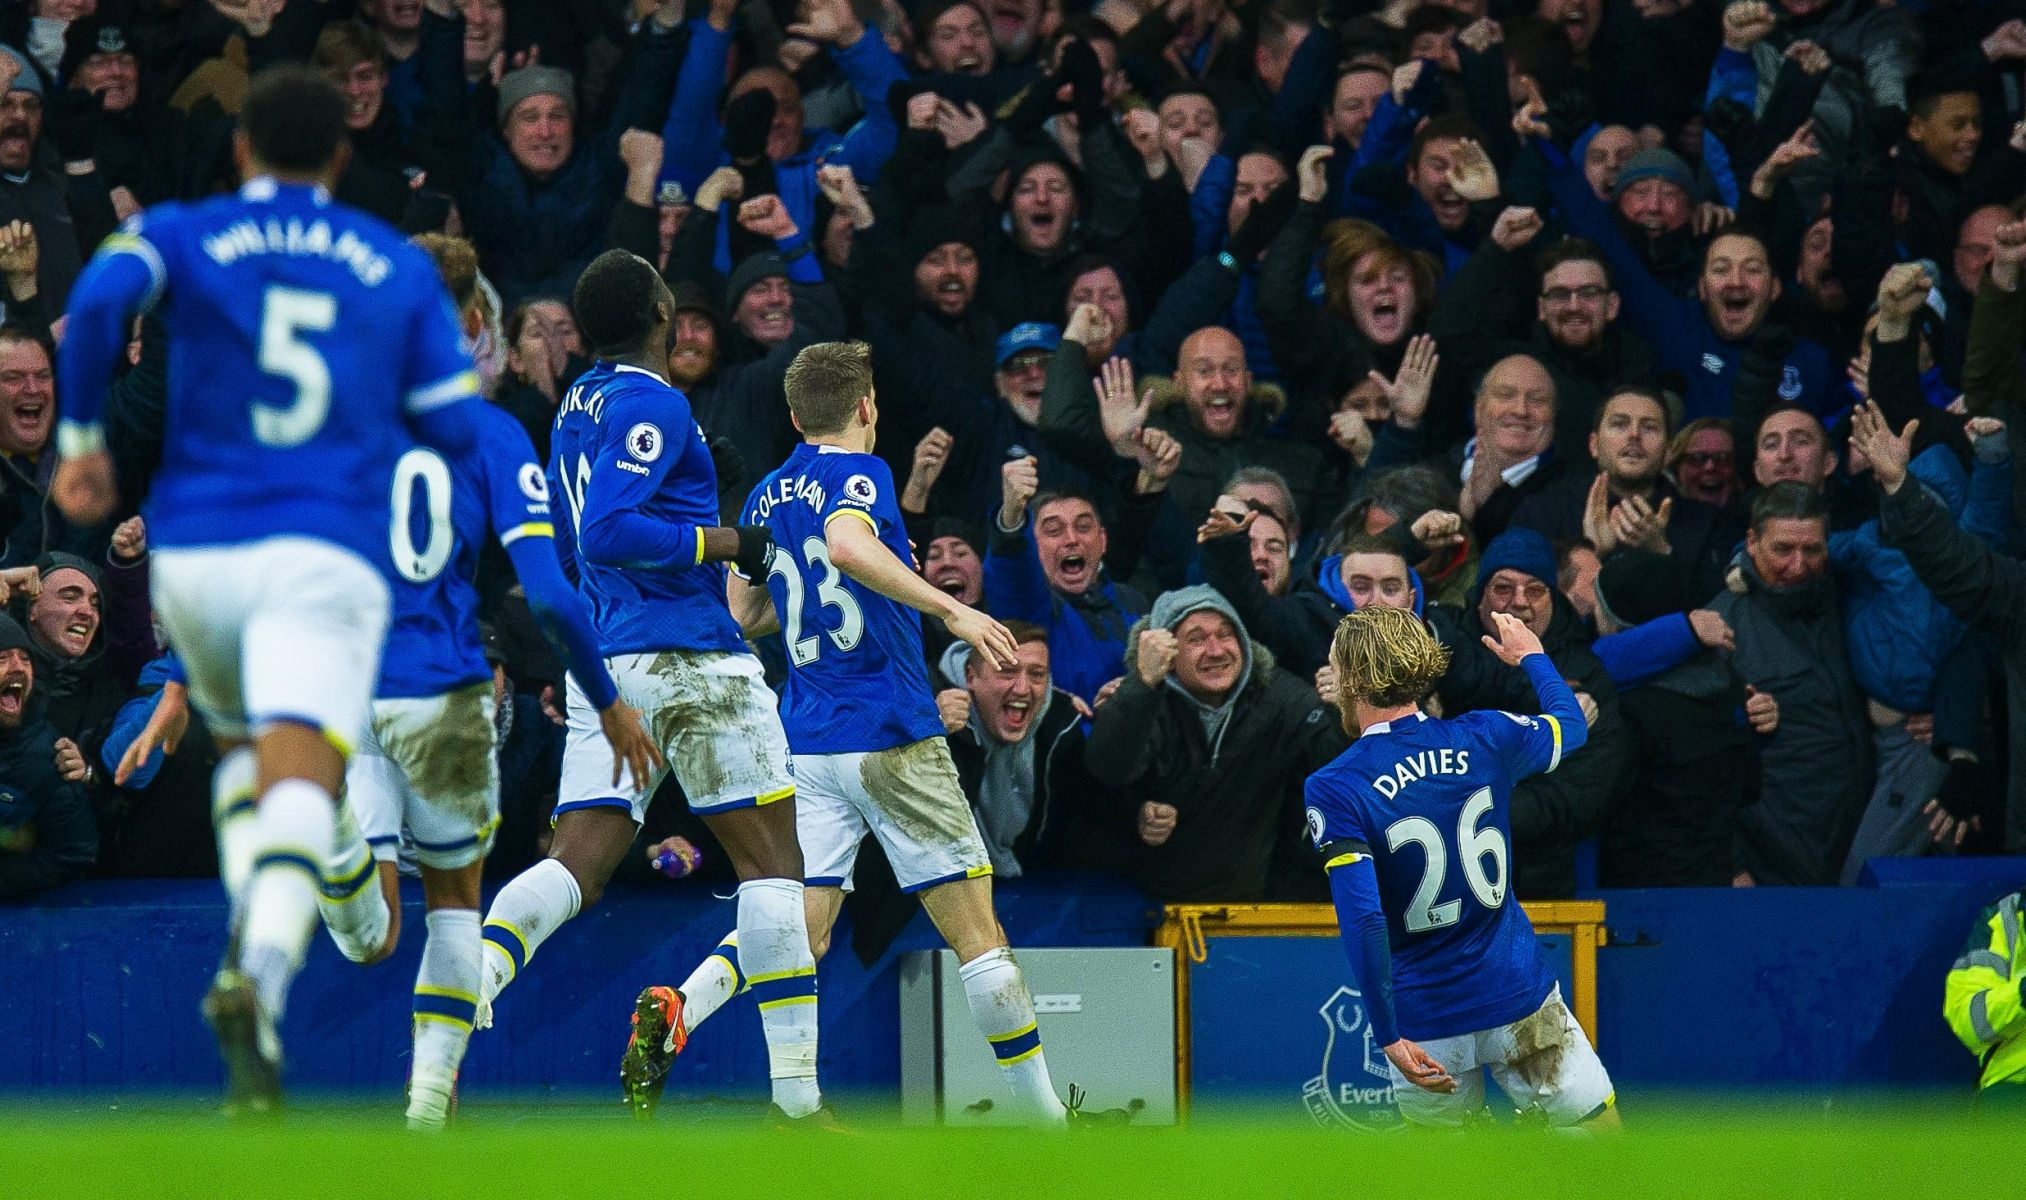 ENGLESKA Everton – Manchester City 4-0